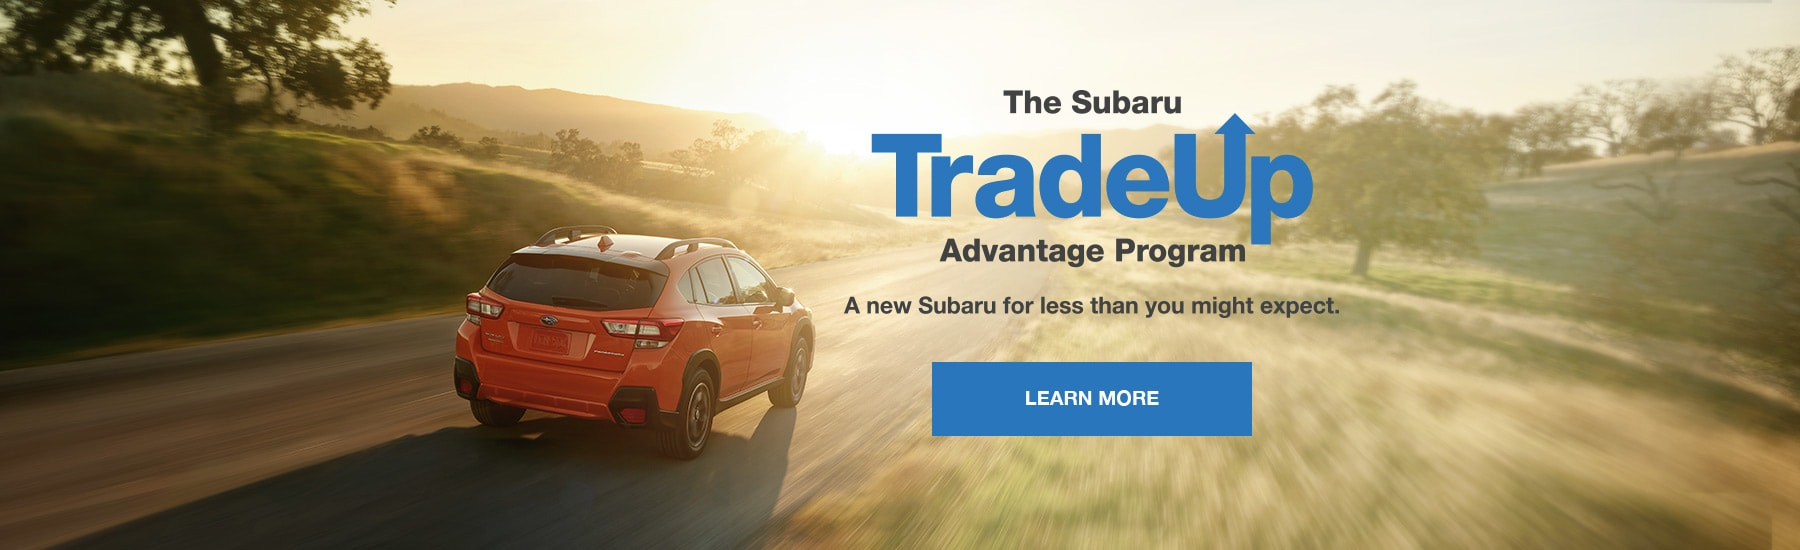 Mitchell Subaru of Canton CT: New Subaru Dealer & Used Cars in